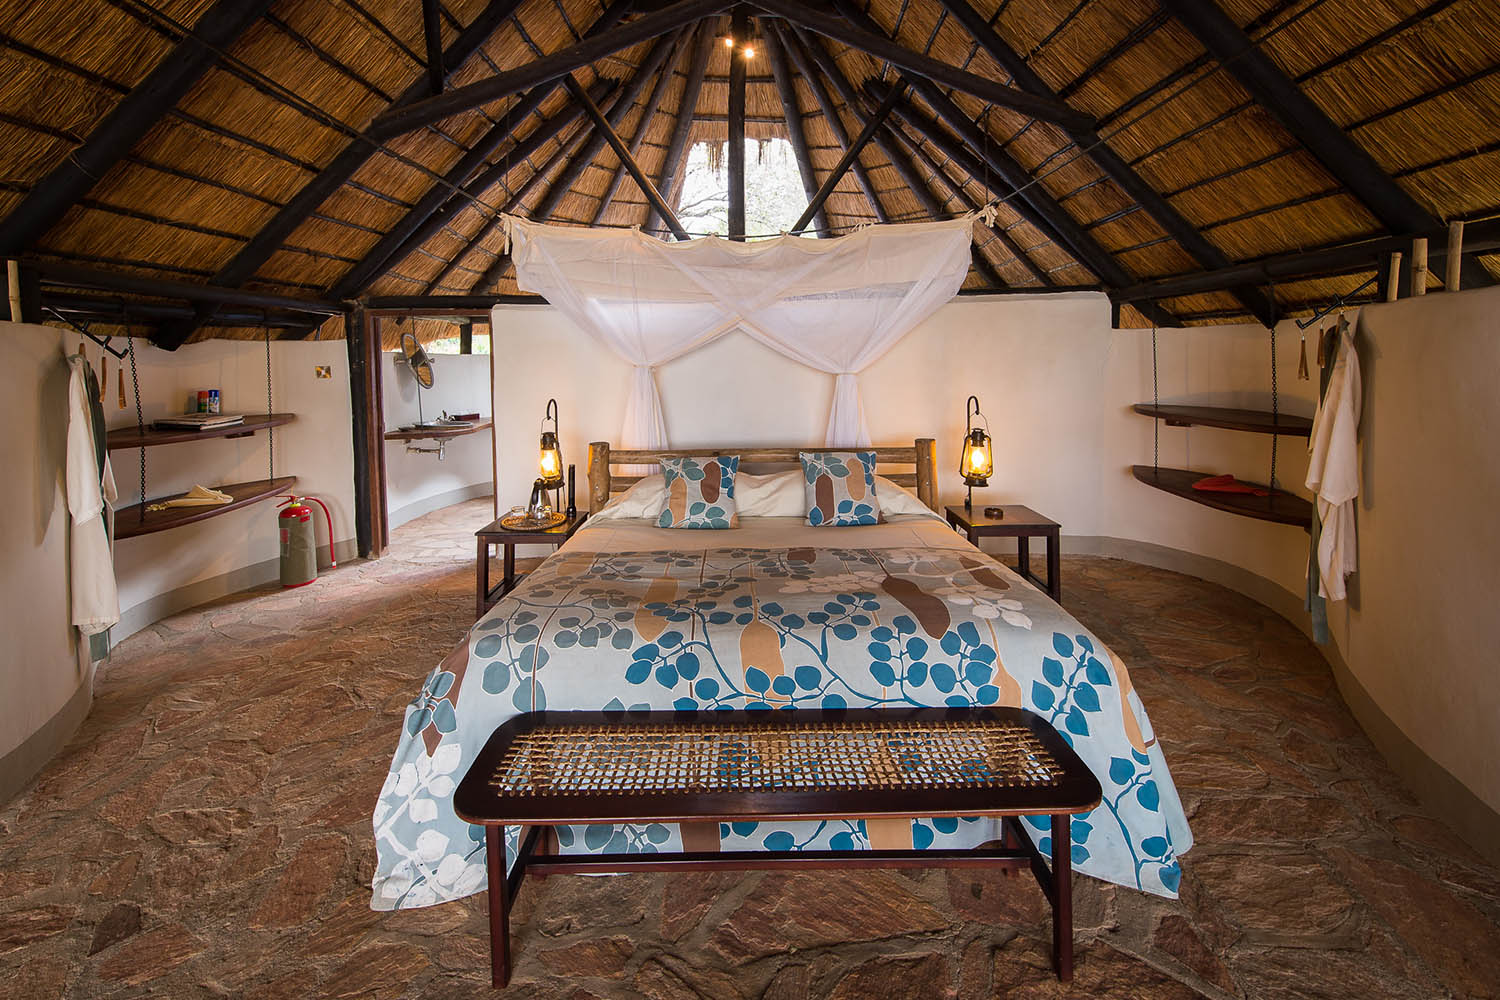 nkwali-zambia-in-style-safari-packages-south-luangwa-national-park-tours-rooms-interior